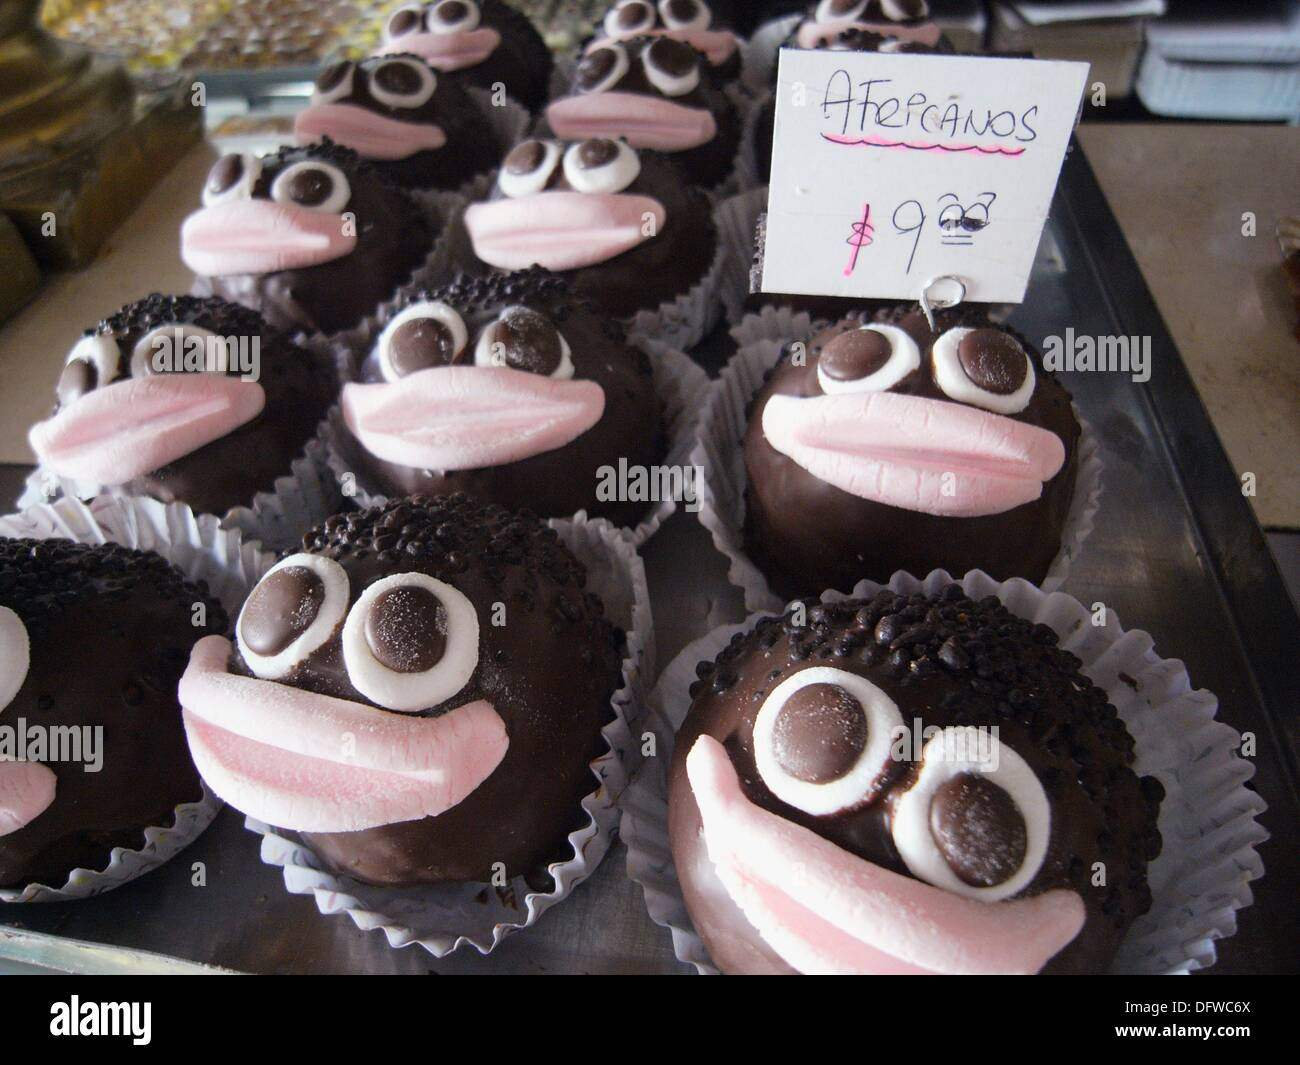 Deliciously politically incorrect - Africano cakes for sale at a confiteria, Buenos Aires, Argentina - Stock Image